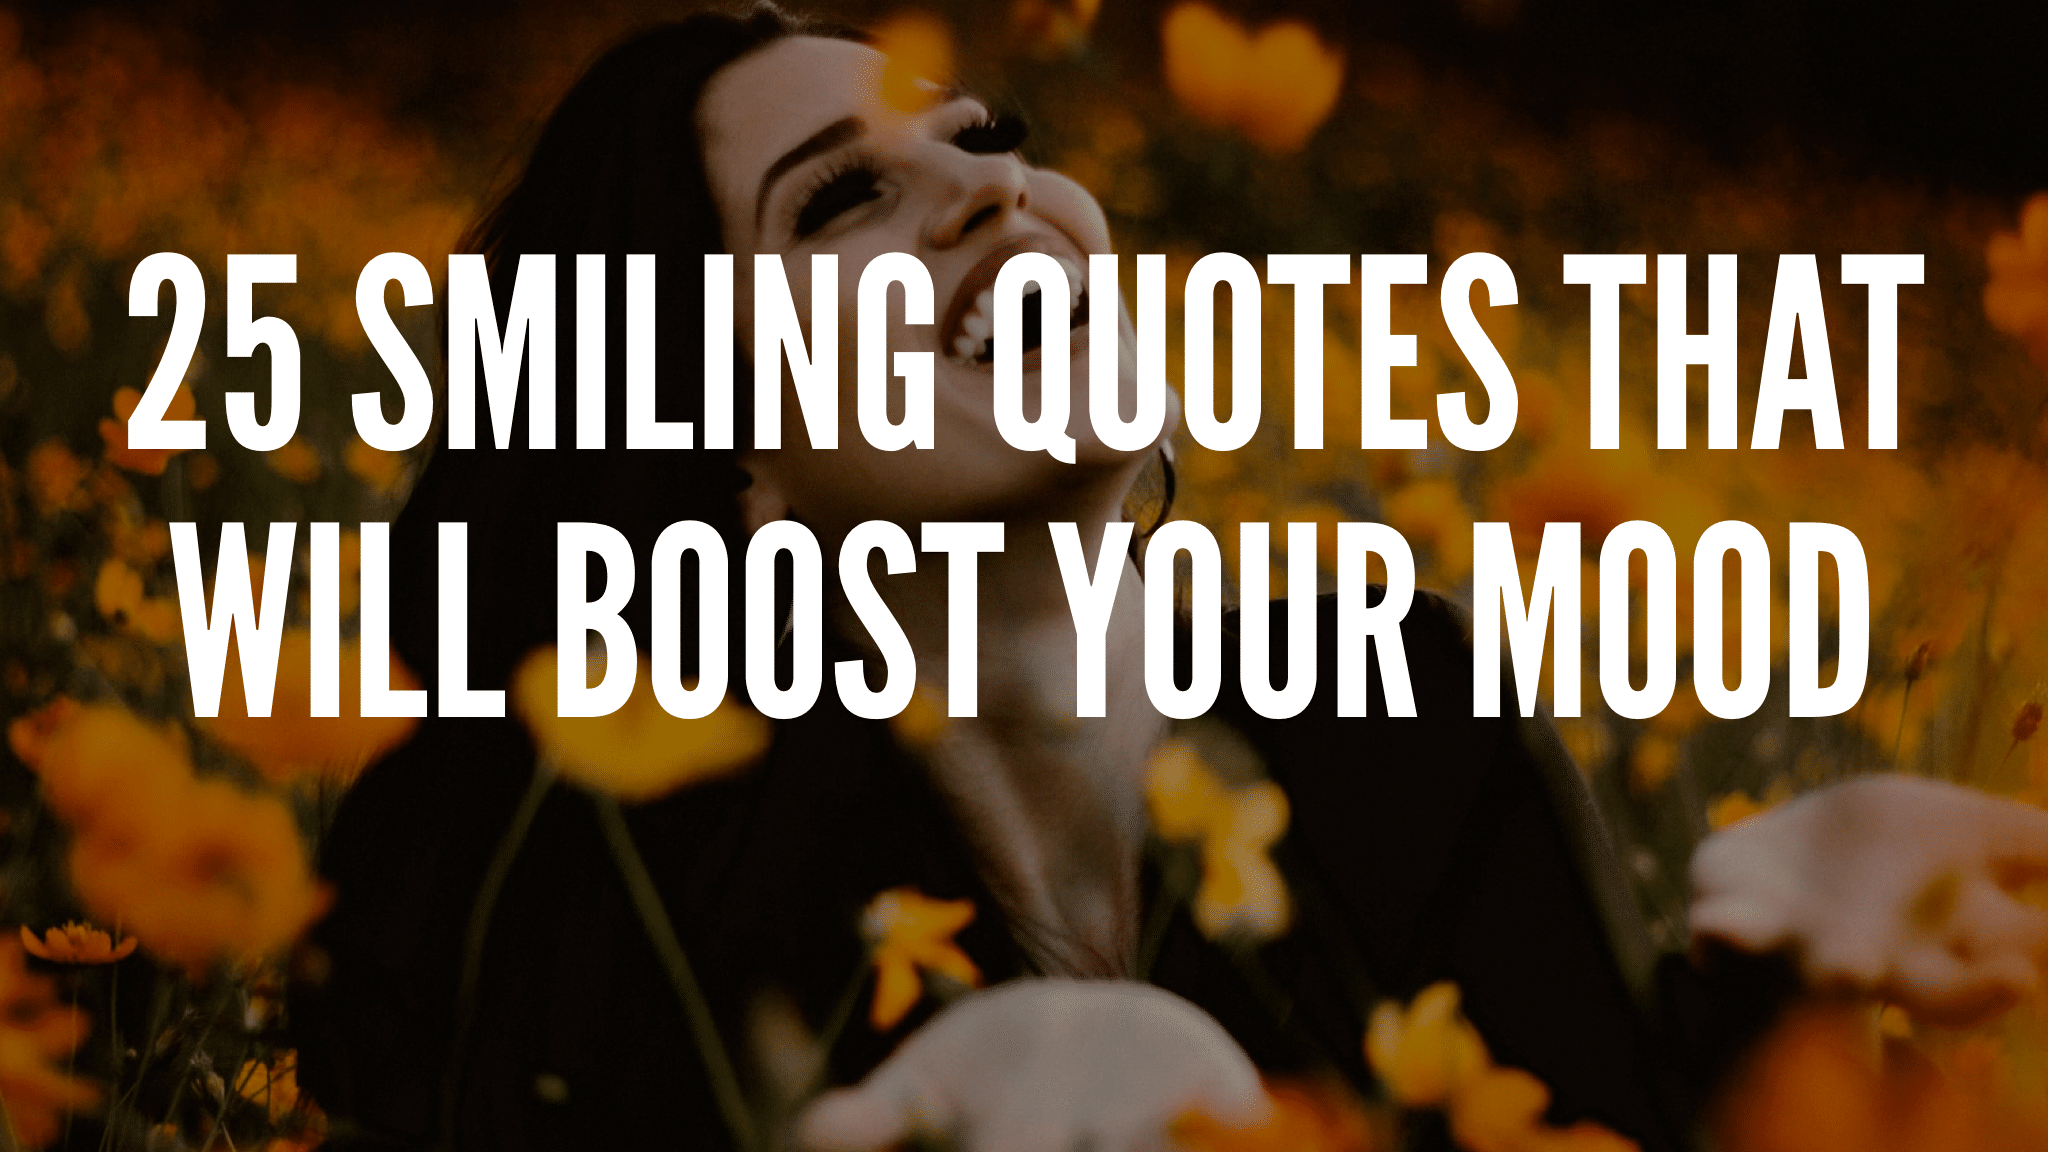 25 Smiling Quotes That Will Boost Your Mood